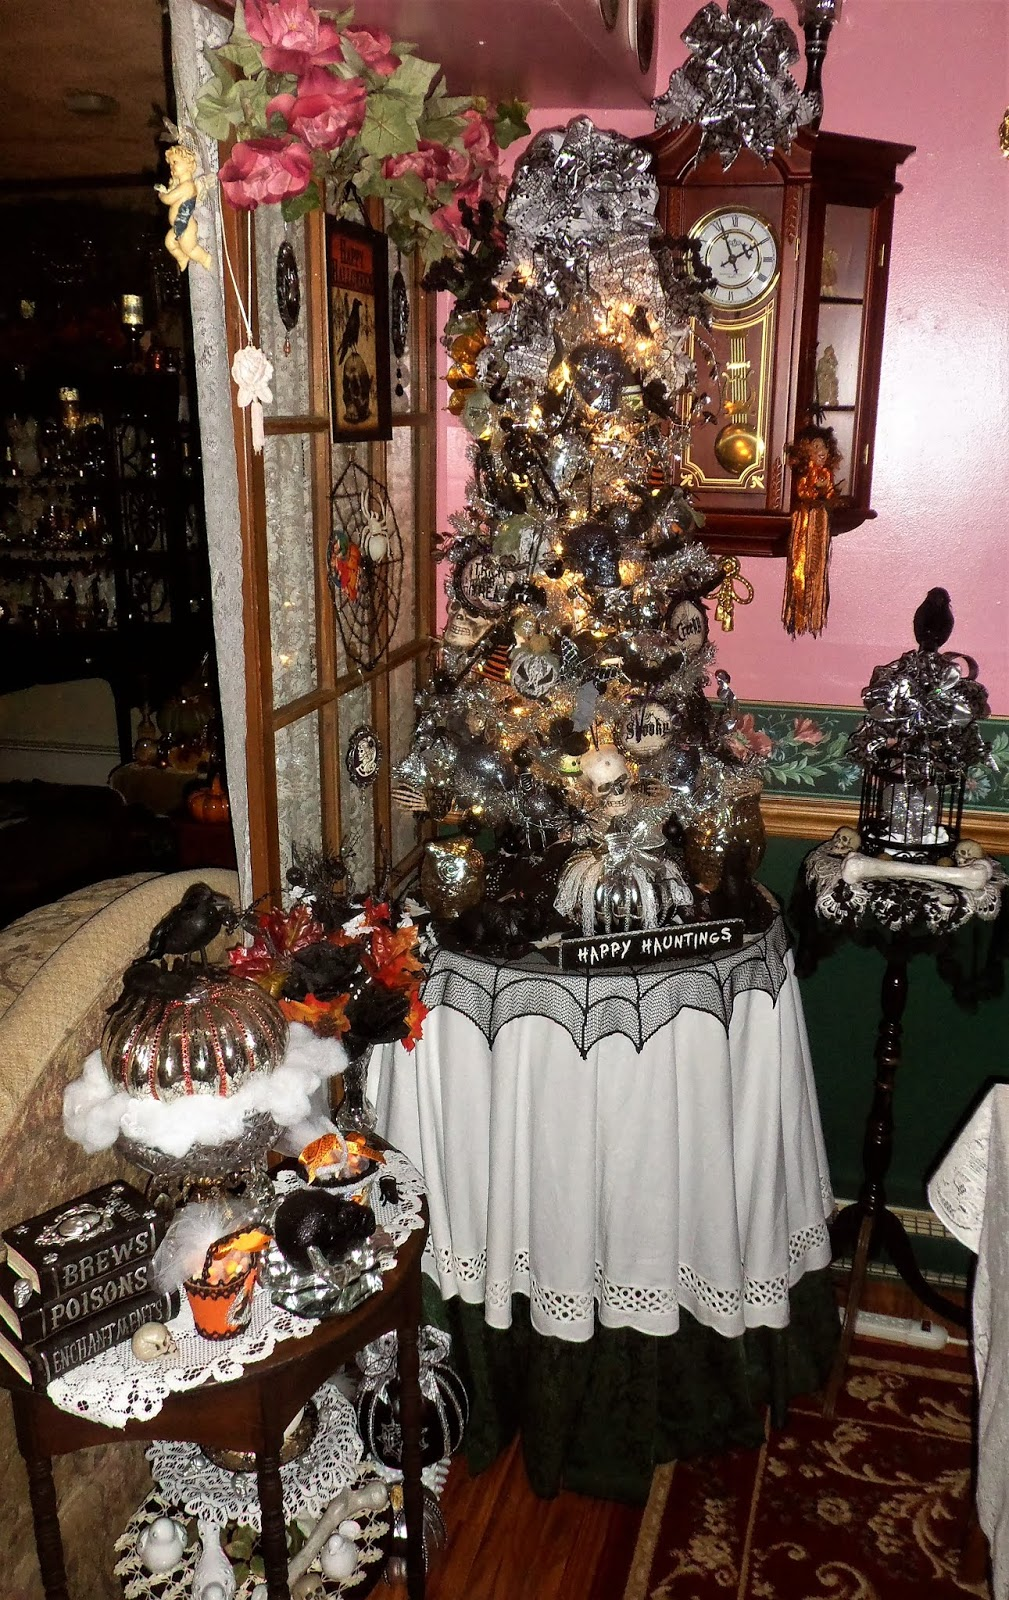 Halloween Tree in the Dining Room, 2018